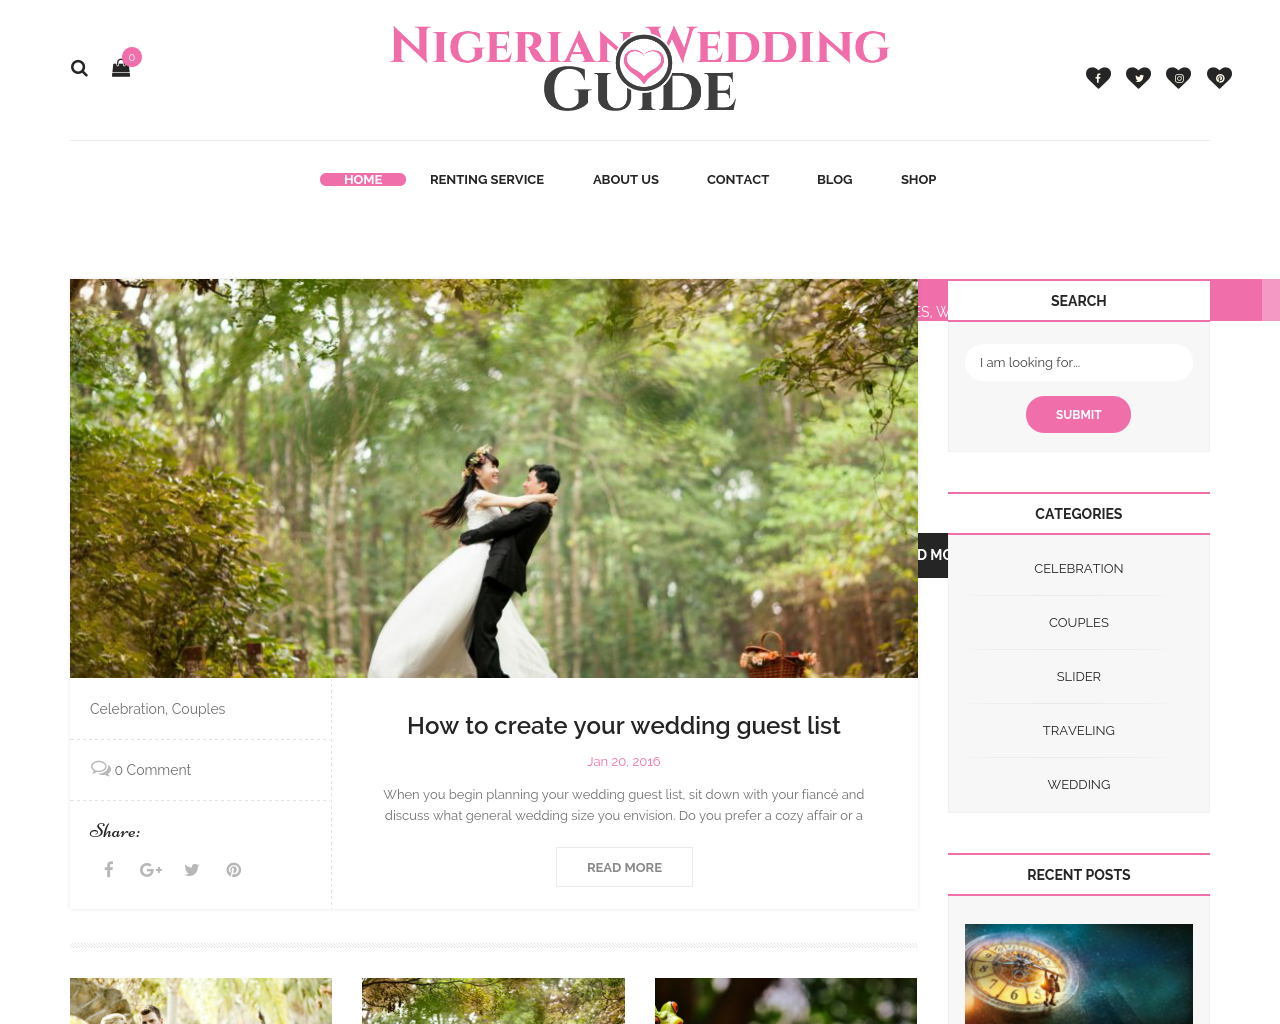 Nigerians-Wedding-Guide-Advertising-Reviews-Pricing